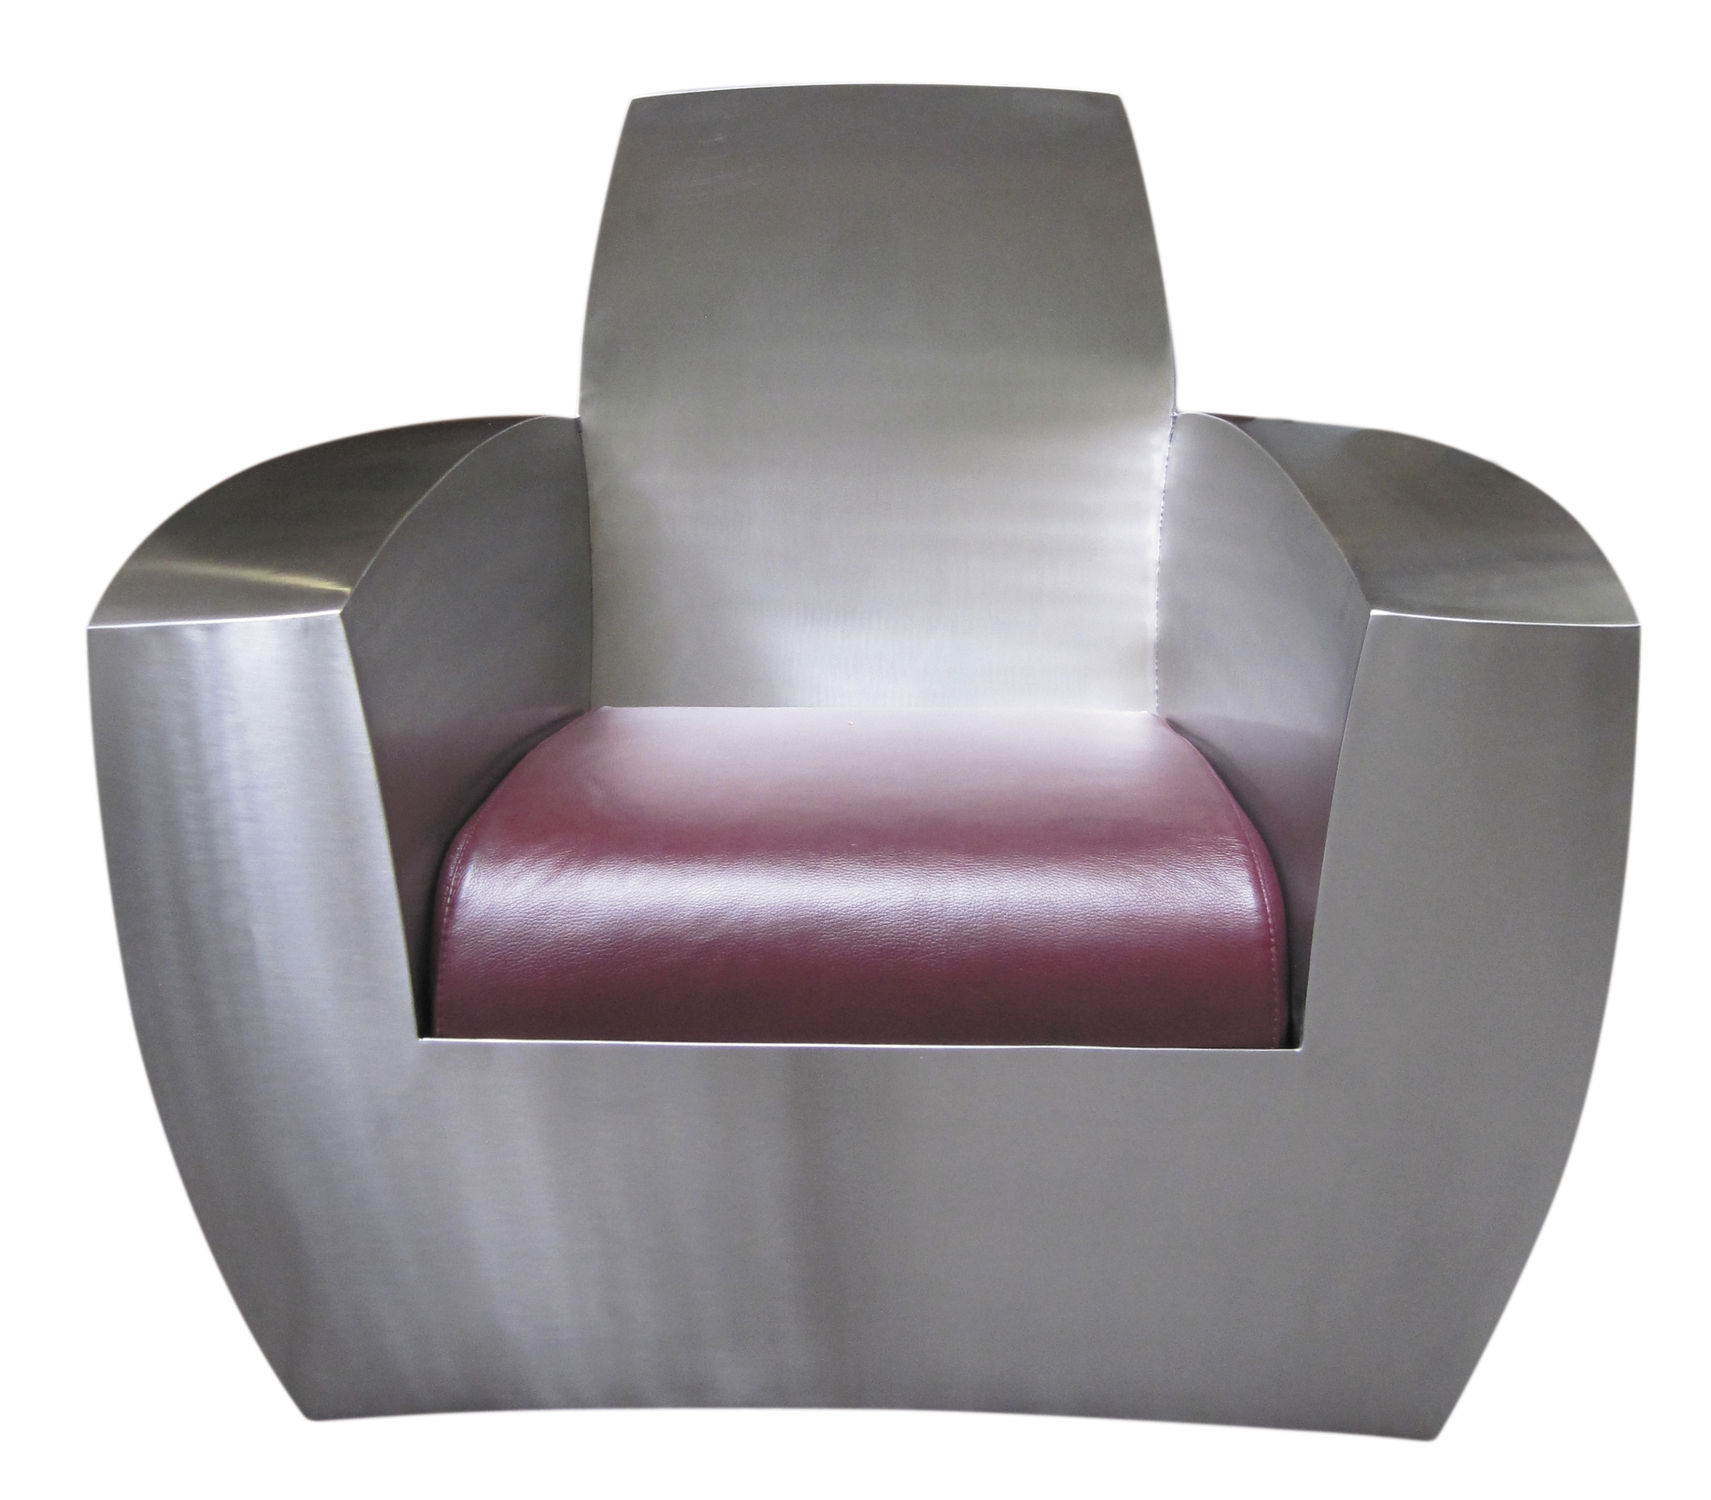 original design armchair leather stainless steel with concealed casters easy two_classic - Fauteuil Stainless